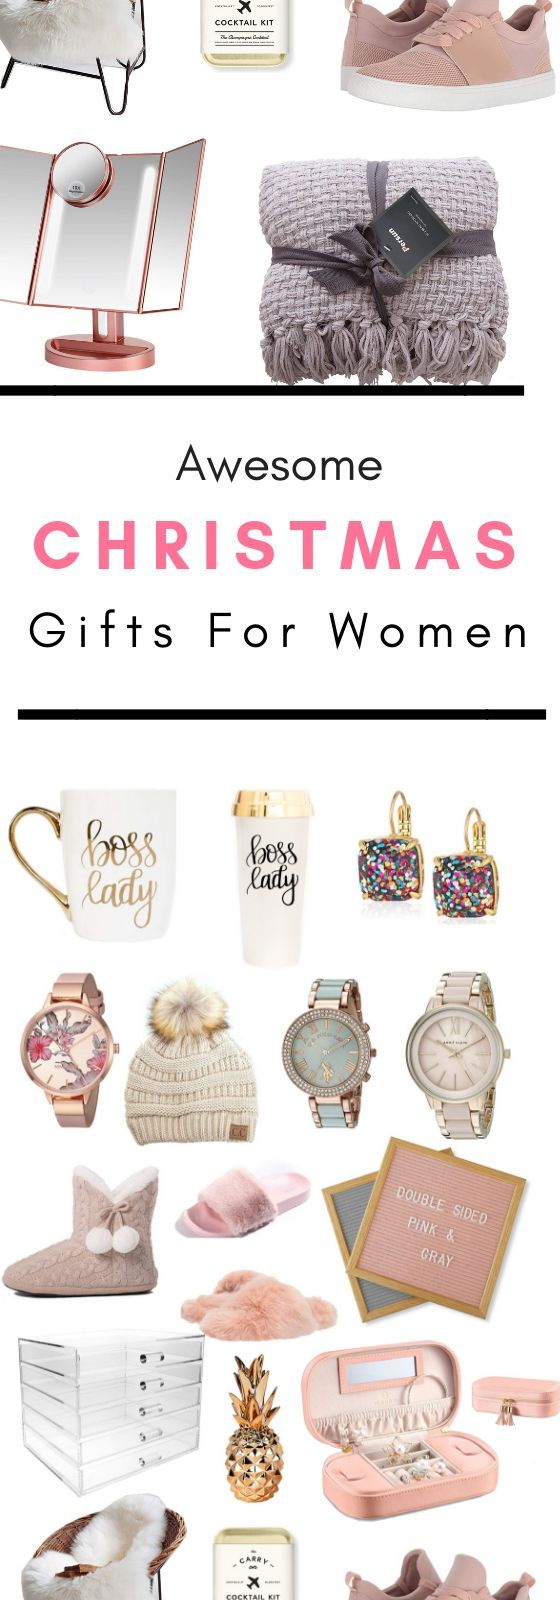 Find Unique Christmas Gifts Ideas For Women For Any Budget Perfect For Mom Sister Girlfrie Girlfriend Gifts Christmas Gifts For Girlfriend Gifts For Friends